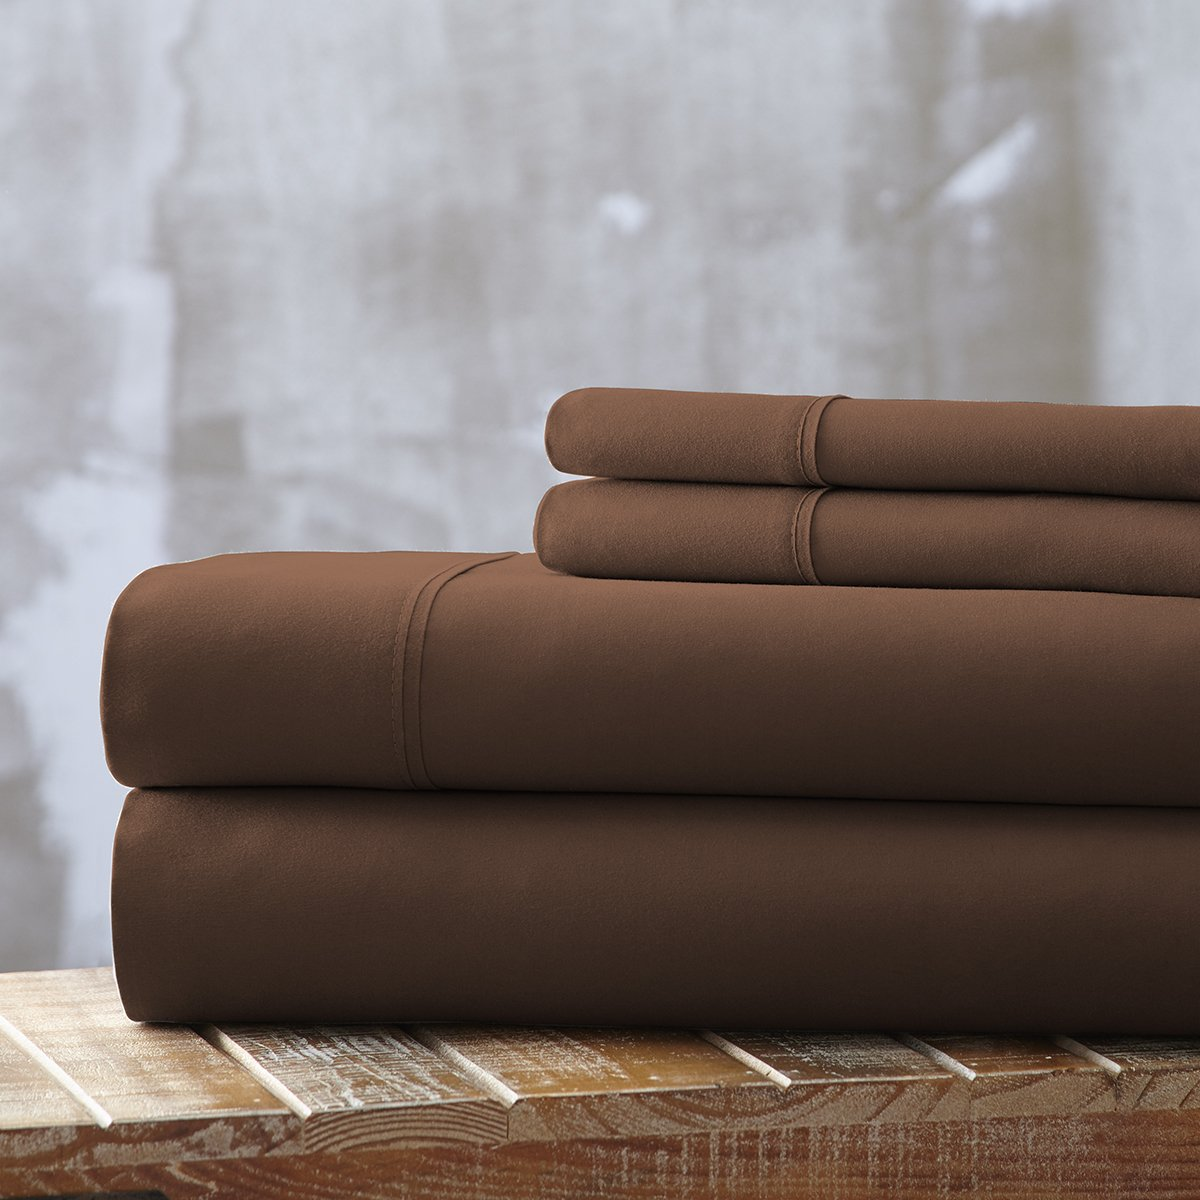 Spirit Linen, Inc Hotel 5th Ave EE-FULL-CHOCOLATE-4PC Full Chocolate Everyday Essentials 1800 Series 4Pc Sheet Set